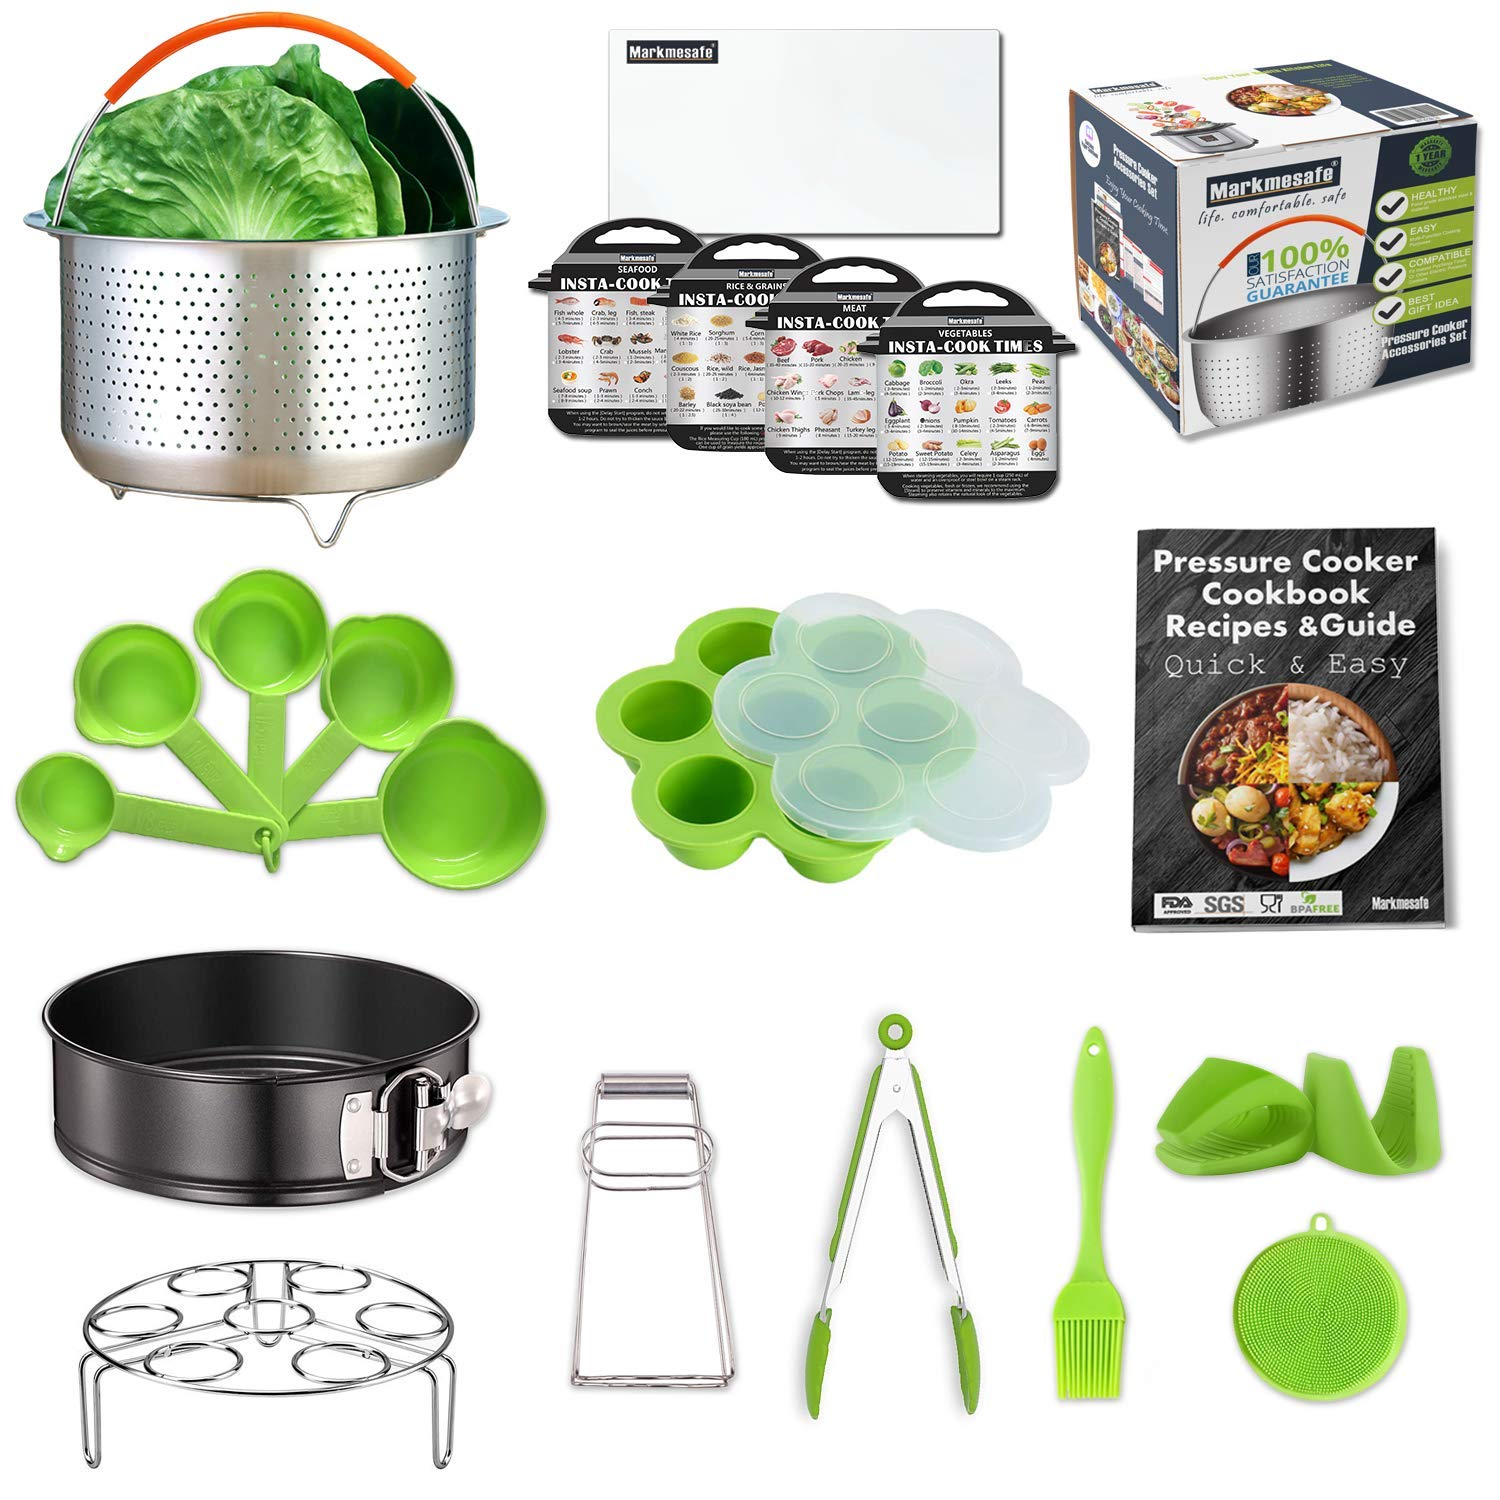 Compatible Instant Pot Accessories Set 6,8 Quart (Qt) Pressure Cooker, Large Steamer Basket, Cookbook Recipes/Egg Rack/Cheesecake Pan/Egg Bites Mold/5 Cheat Sheet Magnet/Kitchen Tongs/Measuring cups